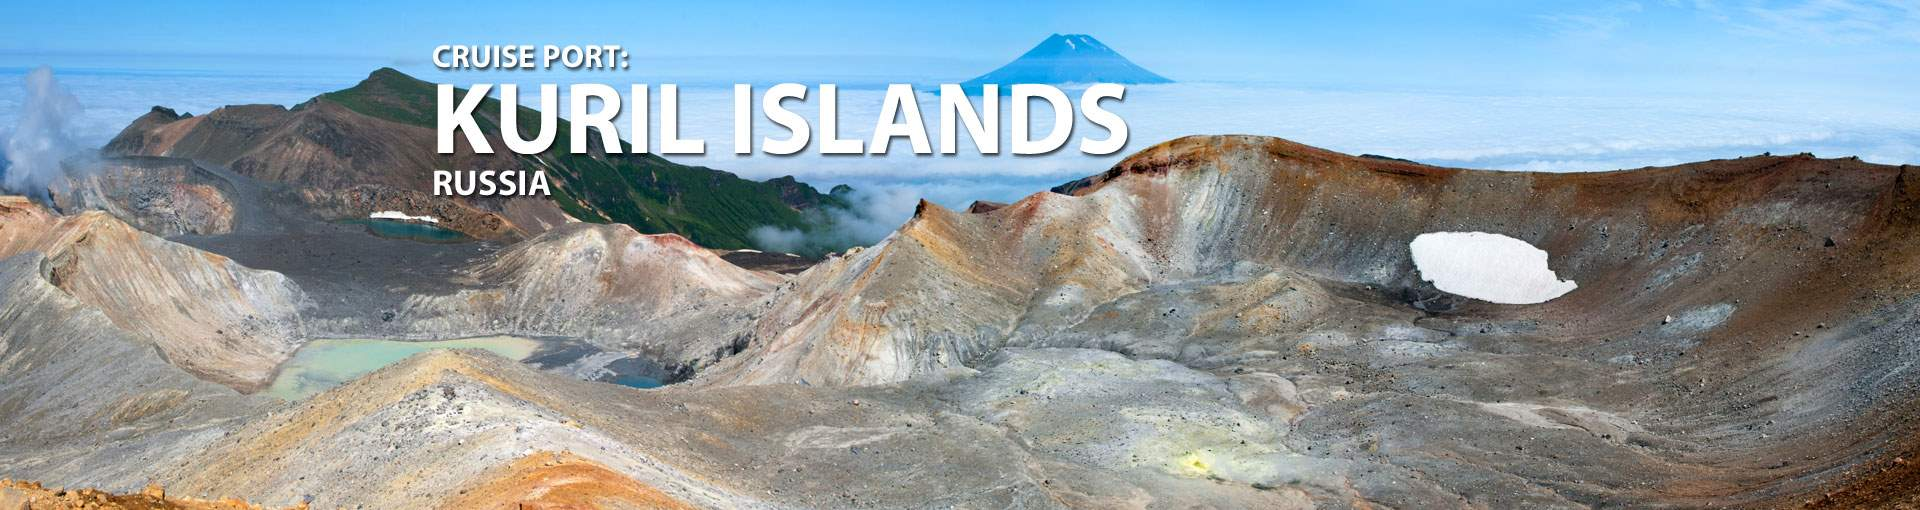 Cruises to Kuril Islands, Russia